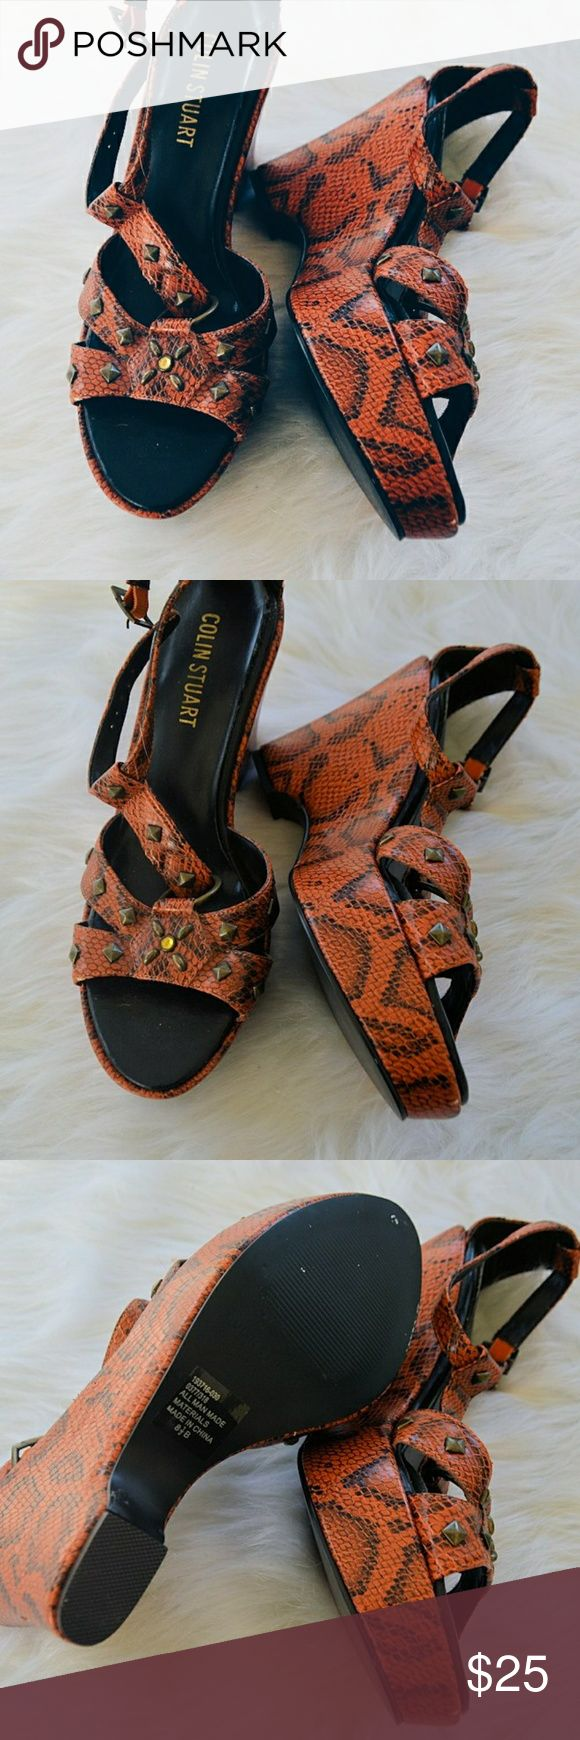 Colin Stuart Orange Snakeprint Summer Wedges Colin Stuart Orange Snakeprint Summer Wedges Embellished Details. New - Only tried on. Size 8.5 Bundle to save. Colin Stuart Shoes Wedges